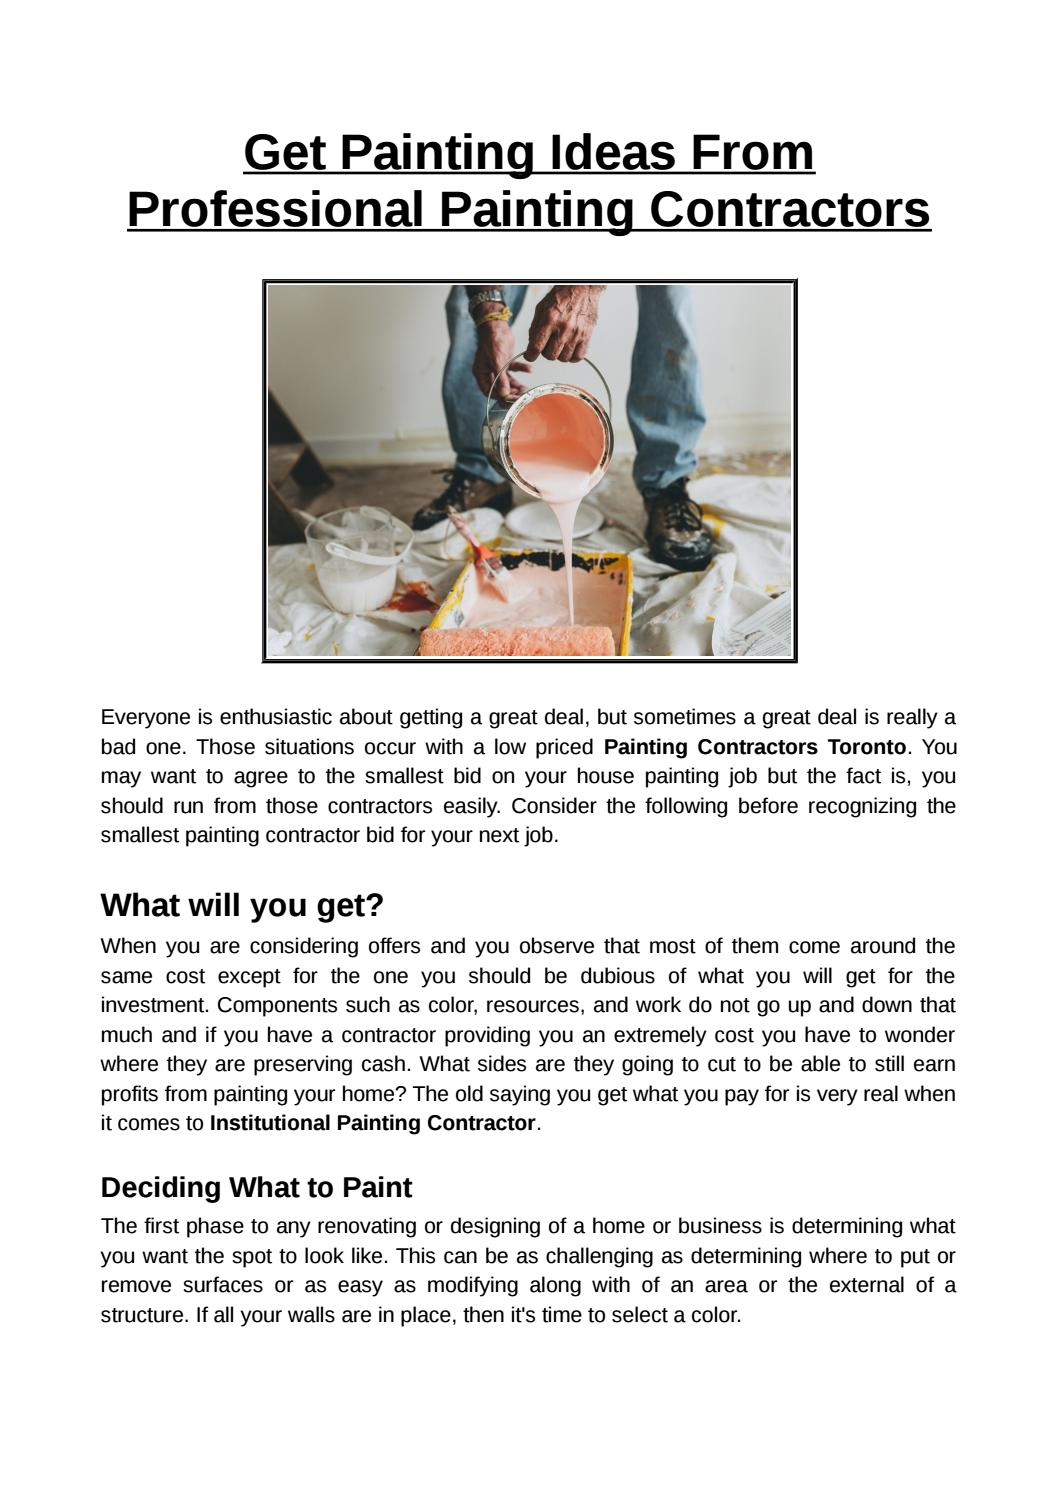 Get Painting Ideas From Professional Painting Contractors By Ontariopaintingcontractors Issuu